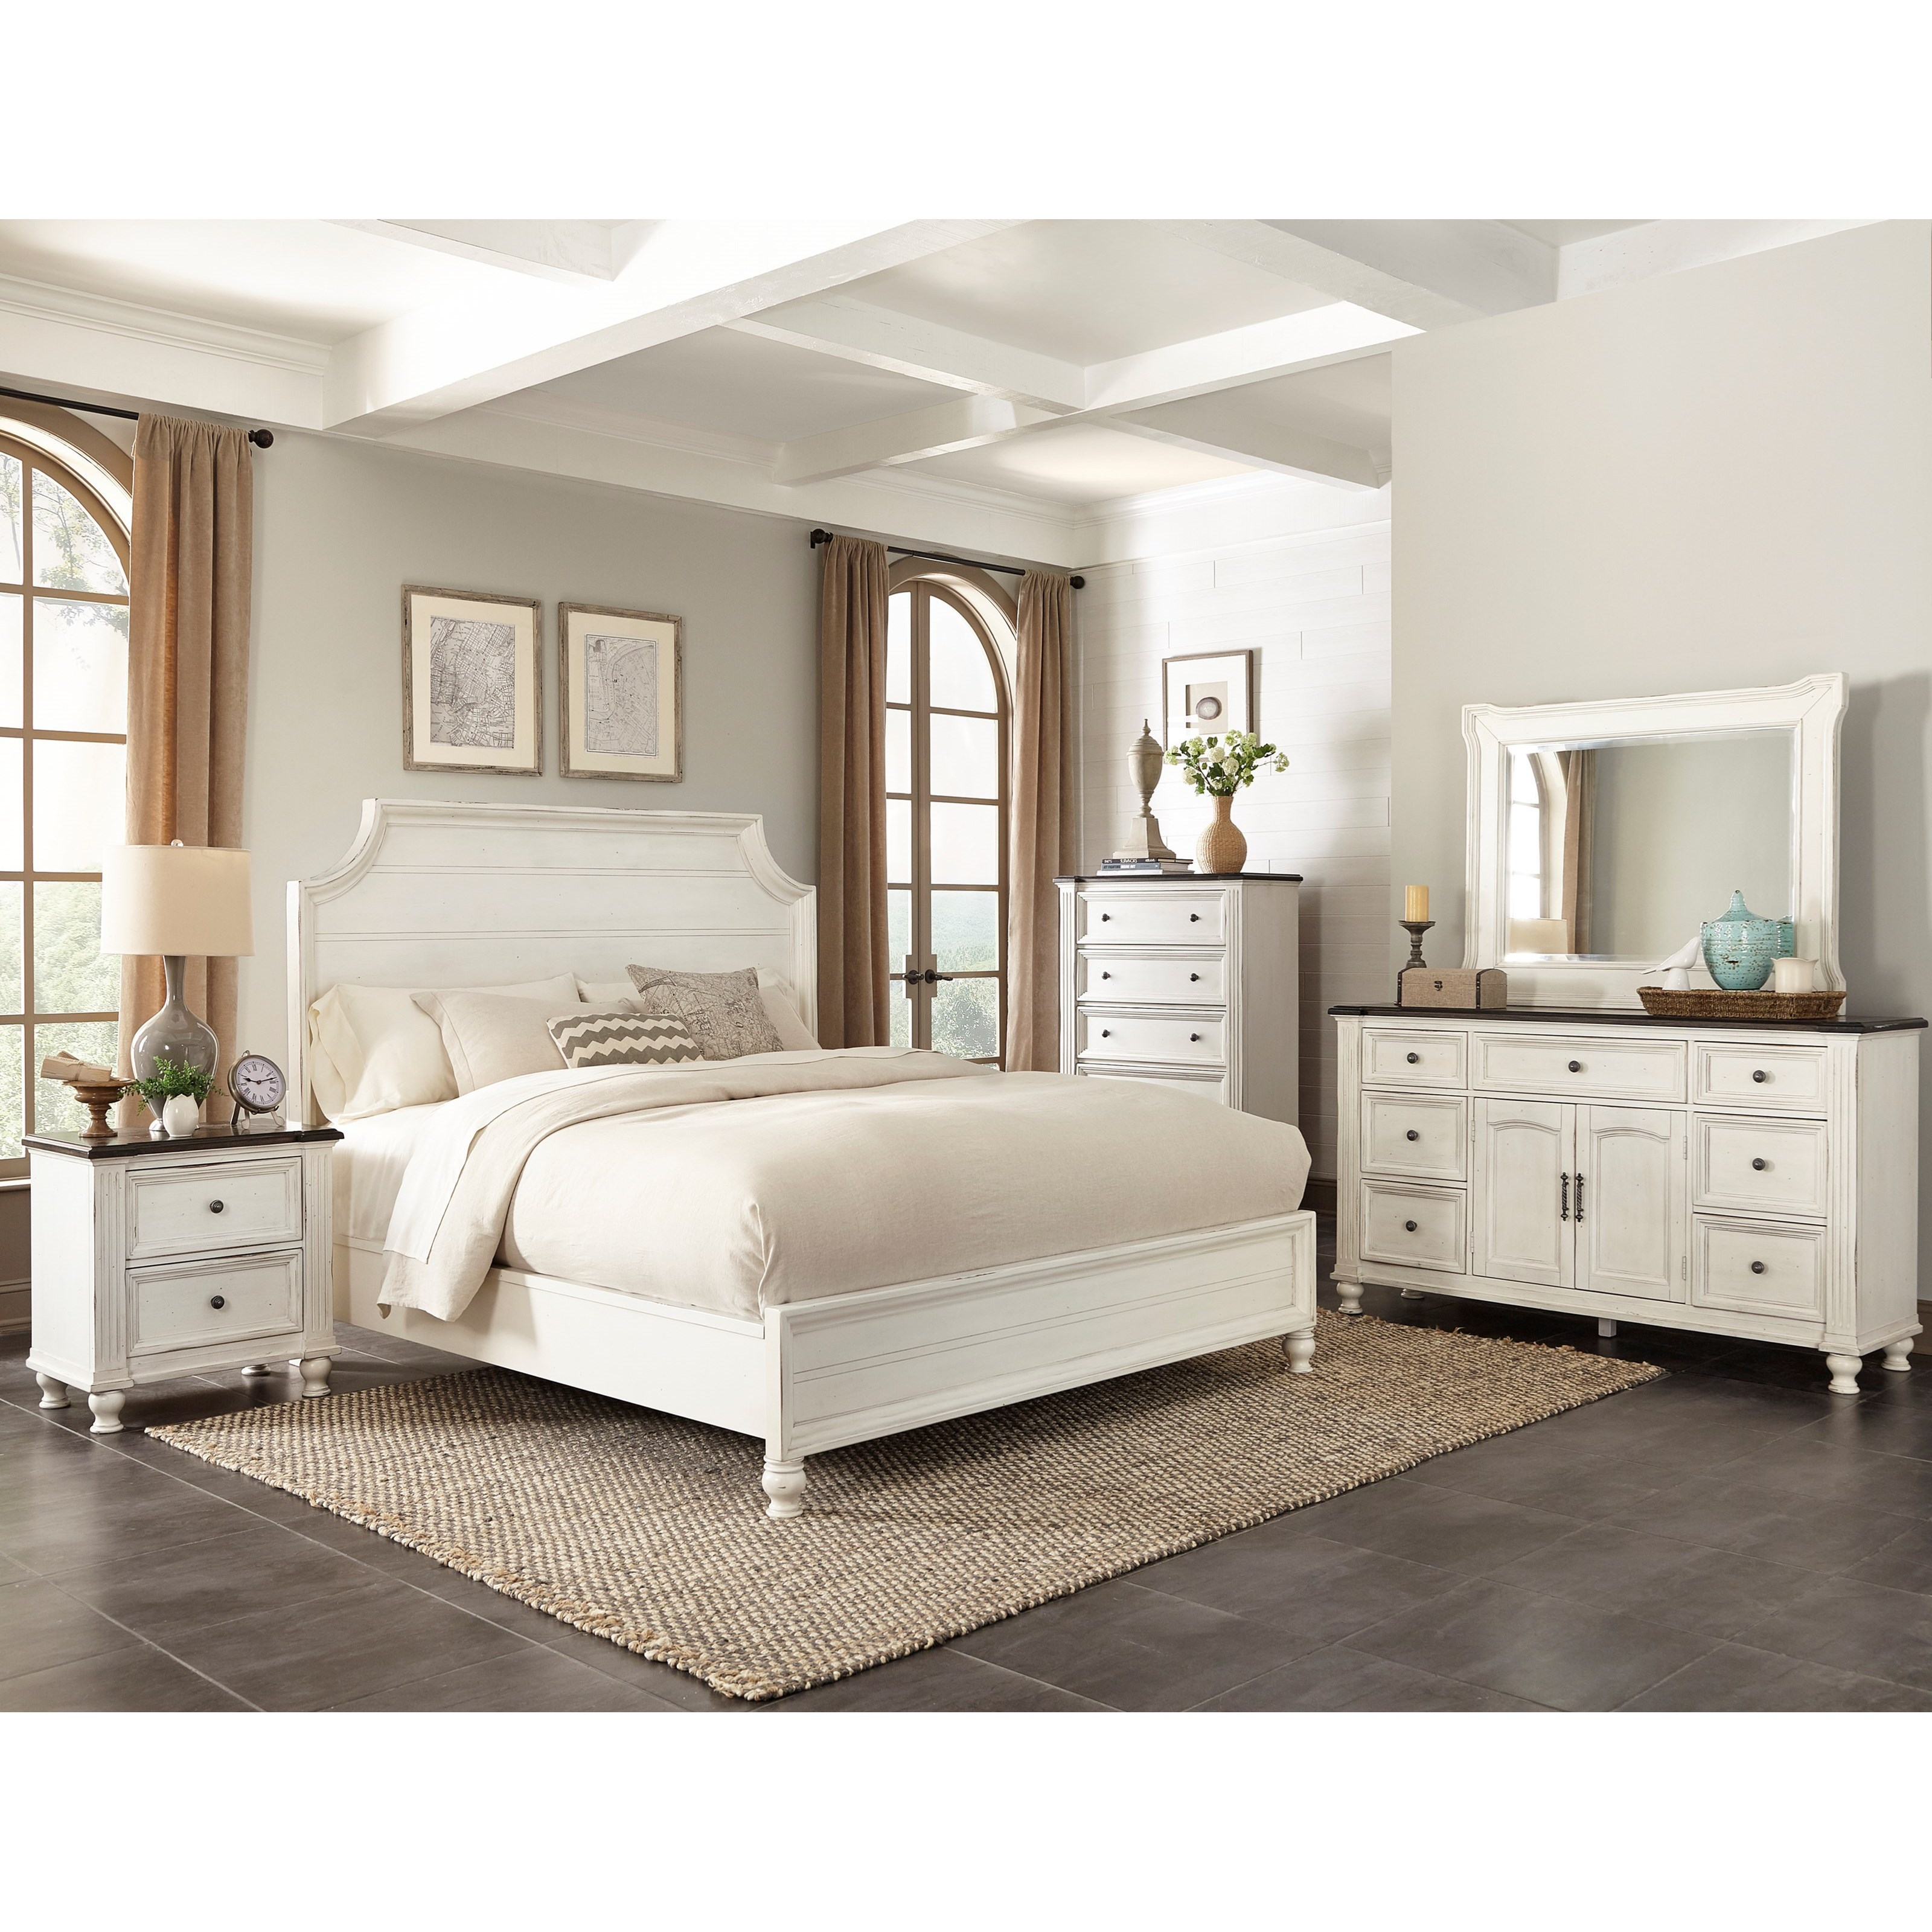 Sunny Designs Carriage House Queen Bedroom Group